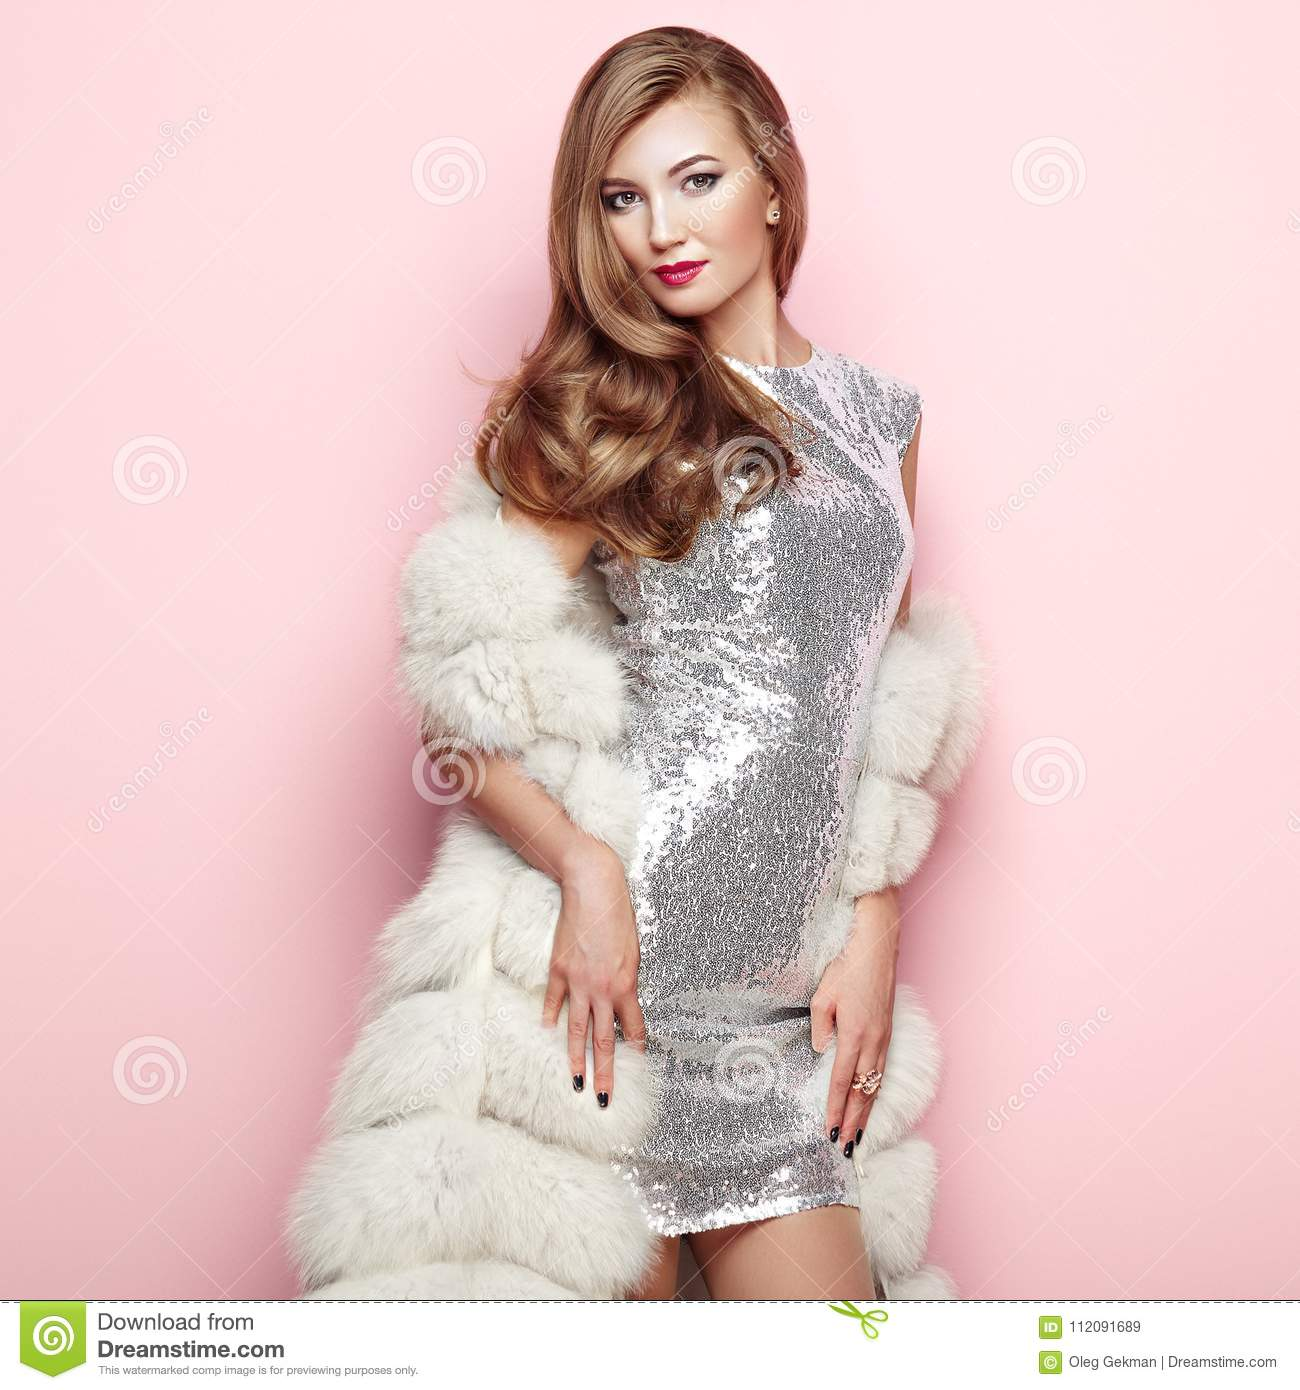 Fashion portrait young woman in white fur coat